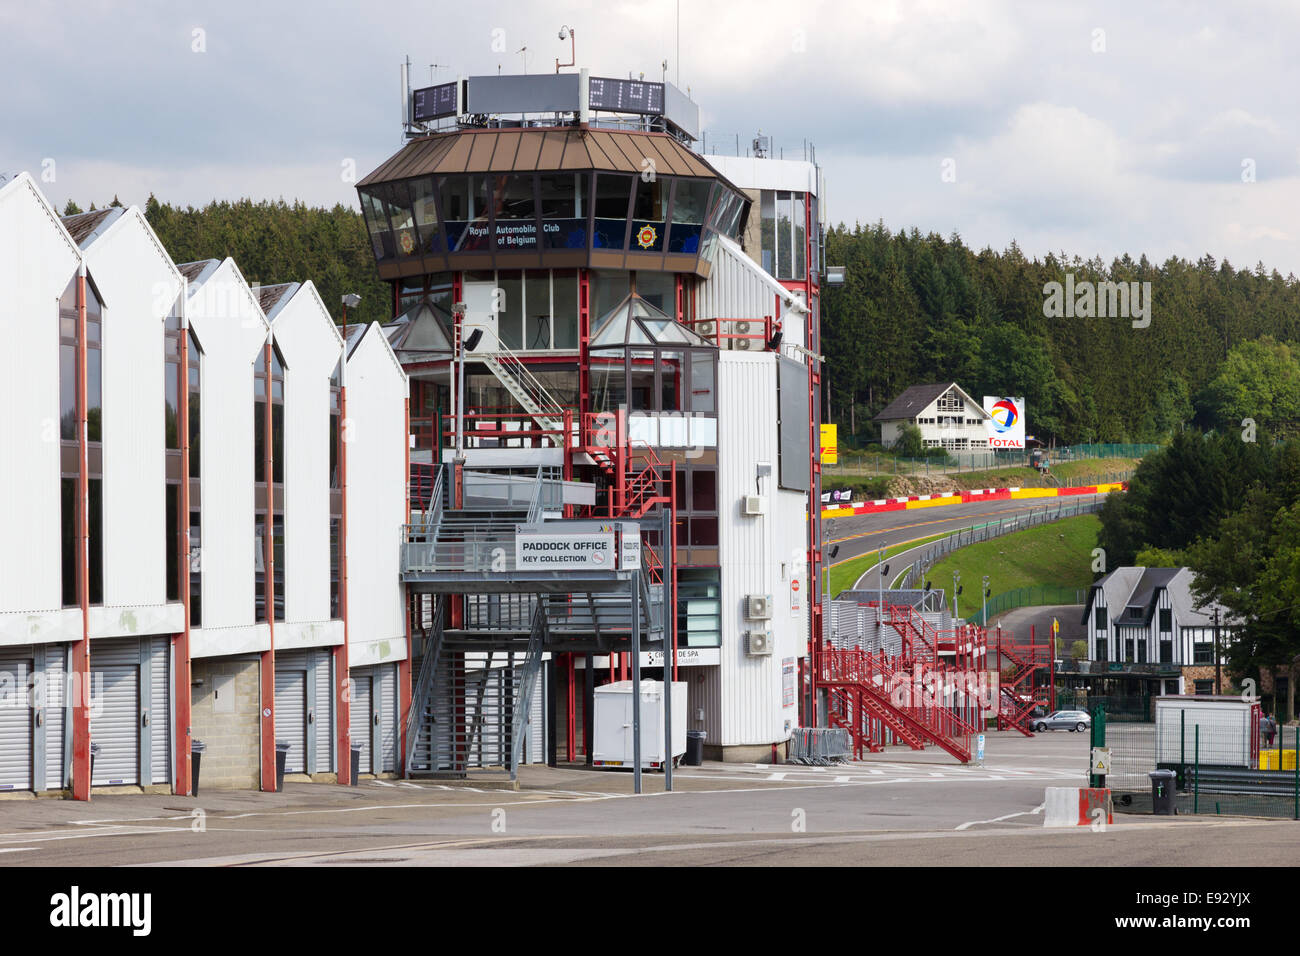 Control tower of the Spa-Francorchamps circuit  in Spa, Belgium. - Stock Image